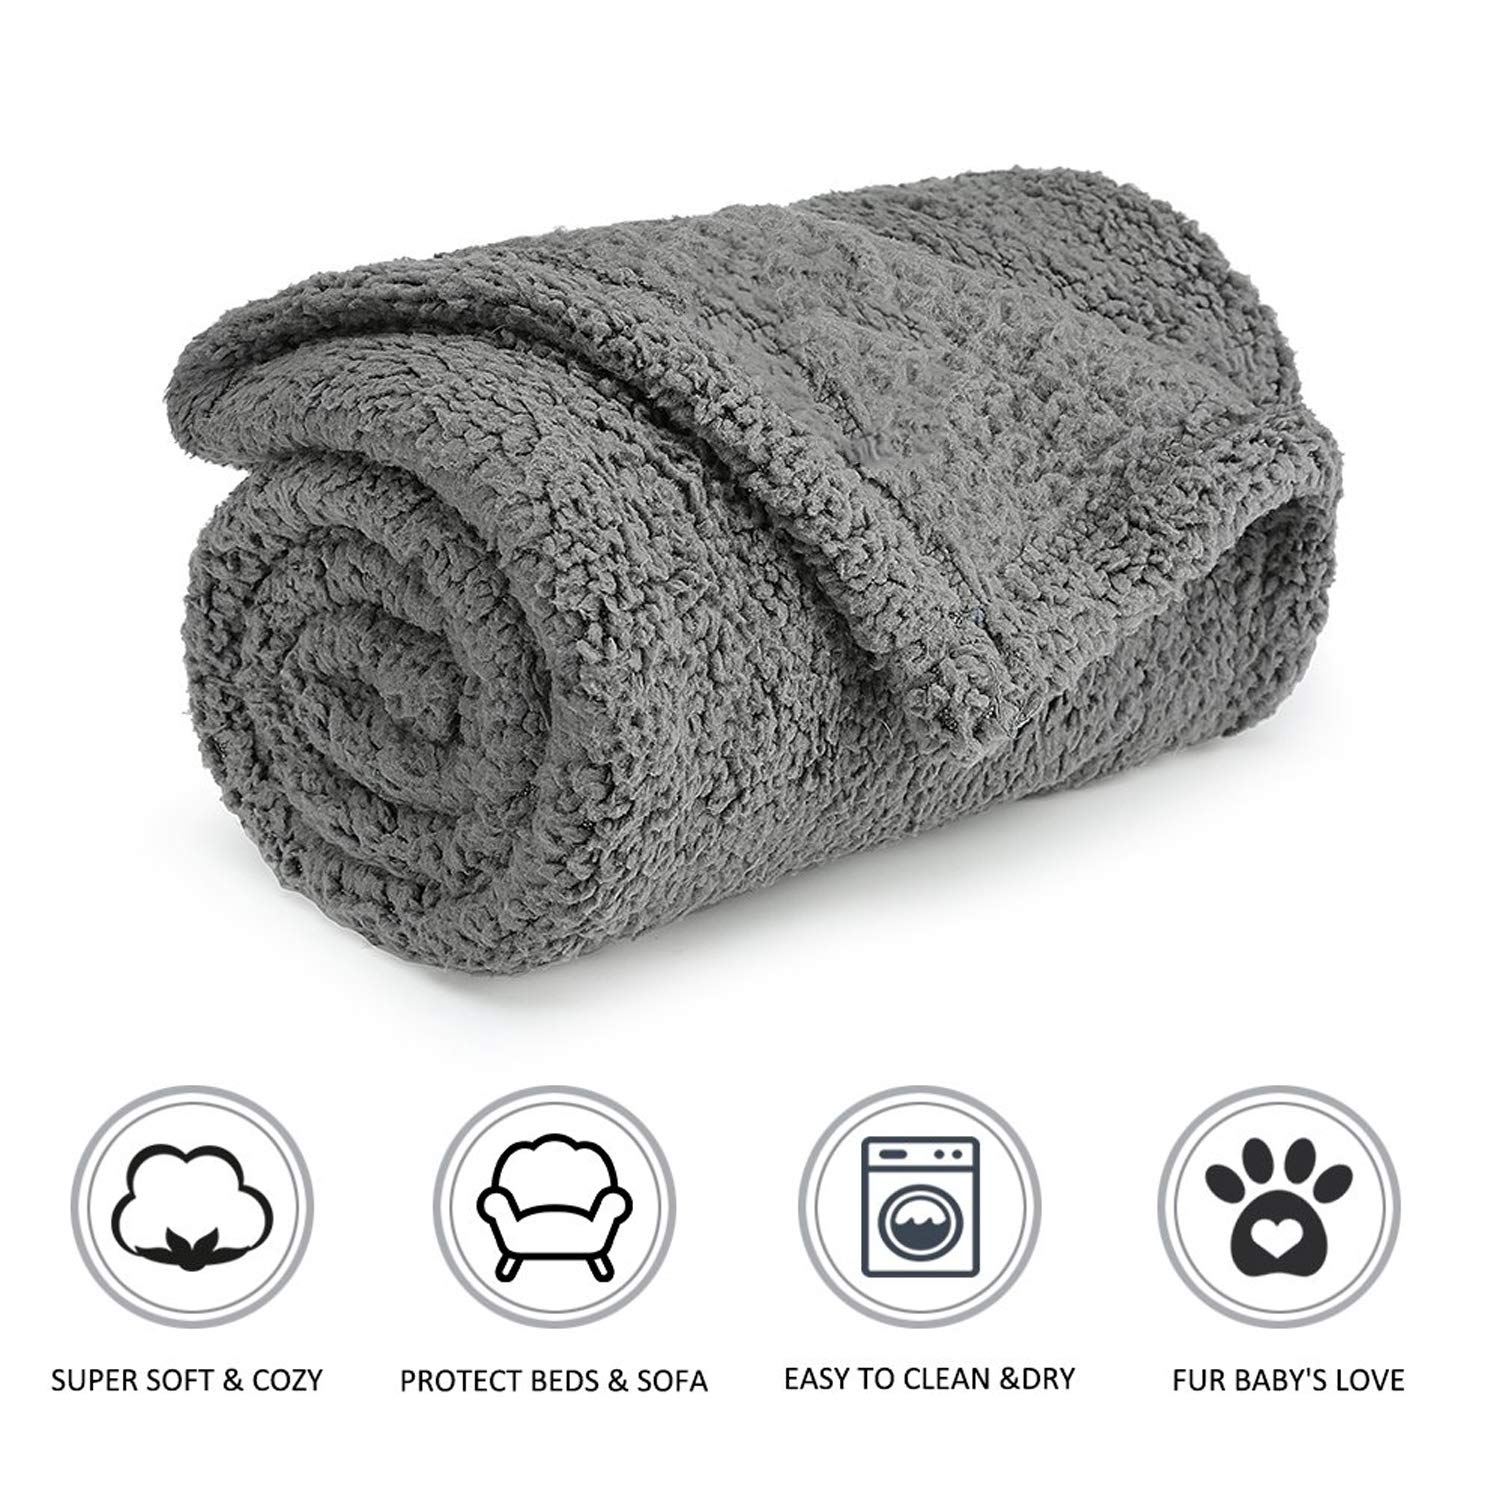 PETCUTE Pet Blanket Fluffy Fleece Dog Blanket Pet Throw for Dogs Blanket for Dogs Cats 2 Pieces